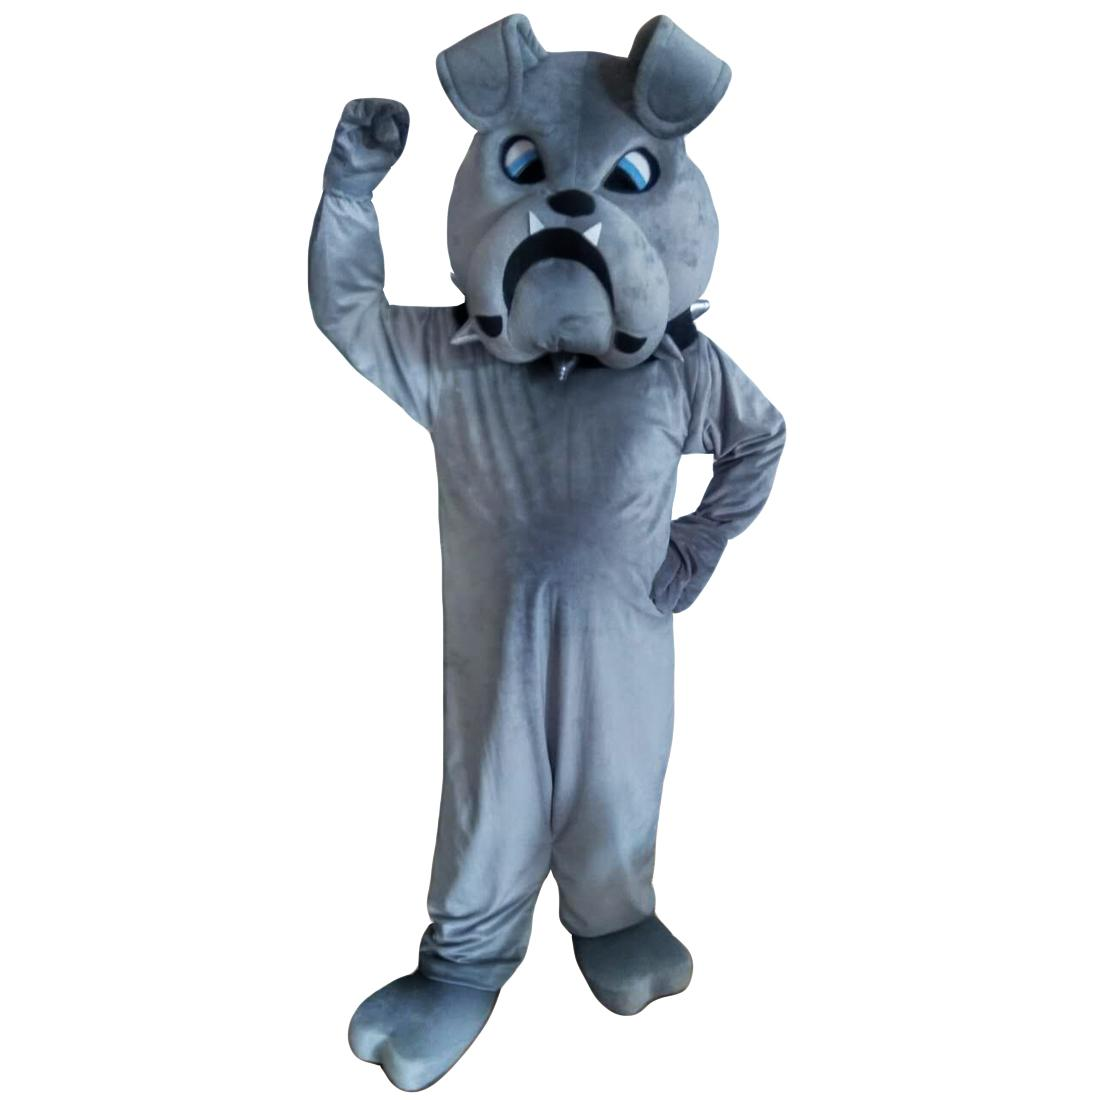 Grey Bulldog Mascot Costume Ems Cheap High Quality Carnival Party Fancy Plush Walking Grey Bulldog Mascot Adult Size. Halloween Costumes Canada Mens ...  sc 1 st  DHgate.com & Grey Bulldog Mascot Costume Ems Cheap High Quality Carnival Party ...